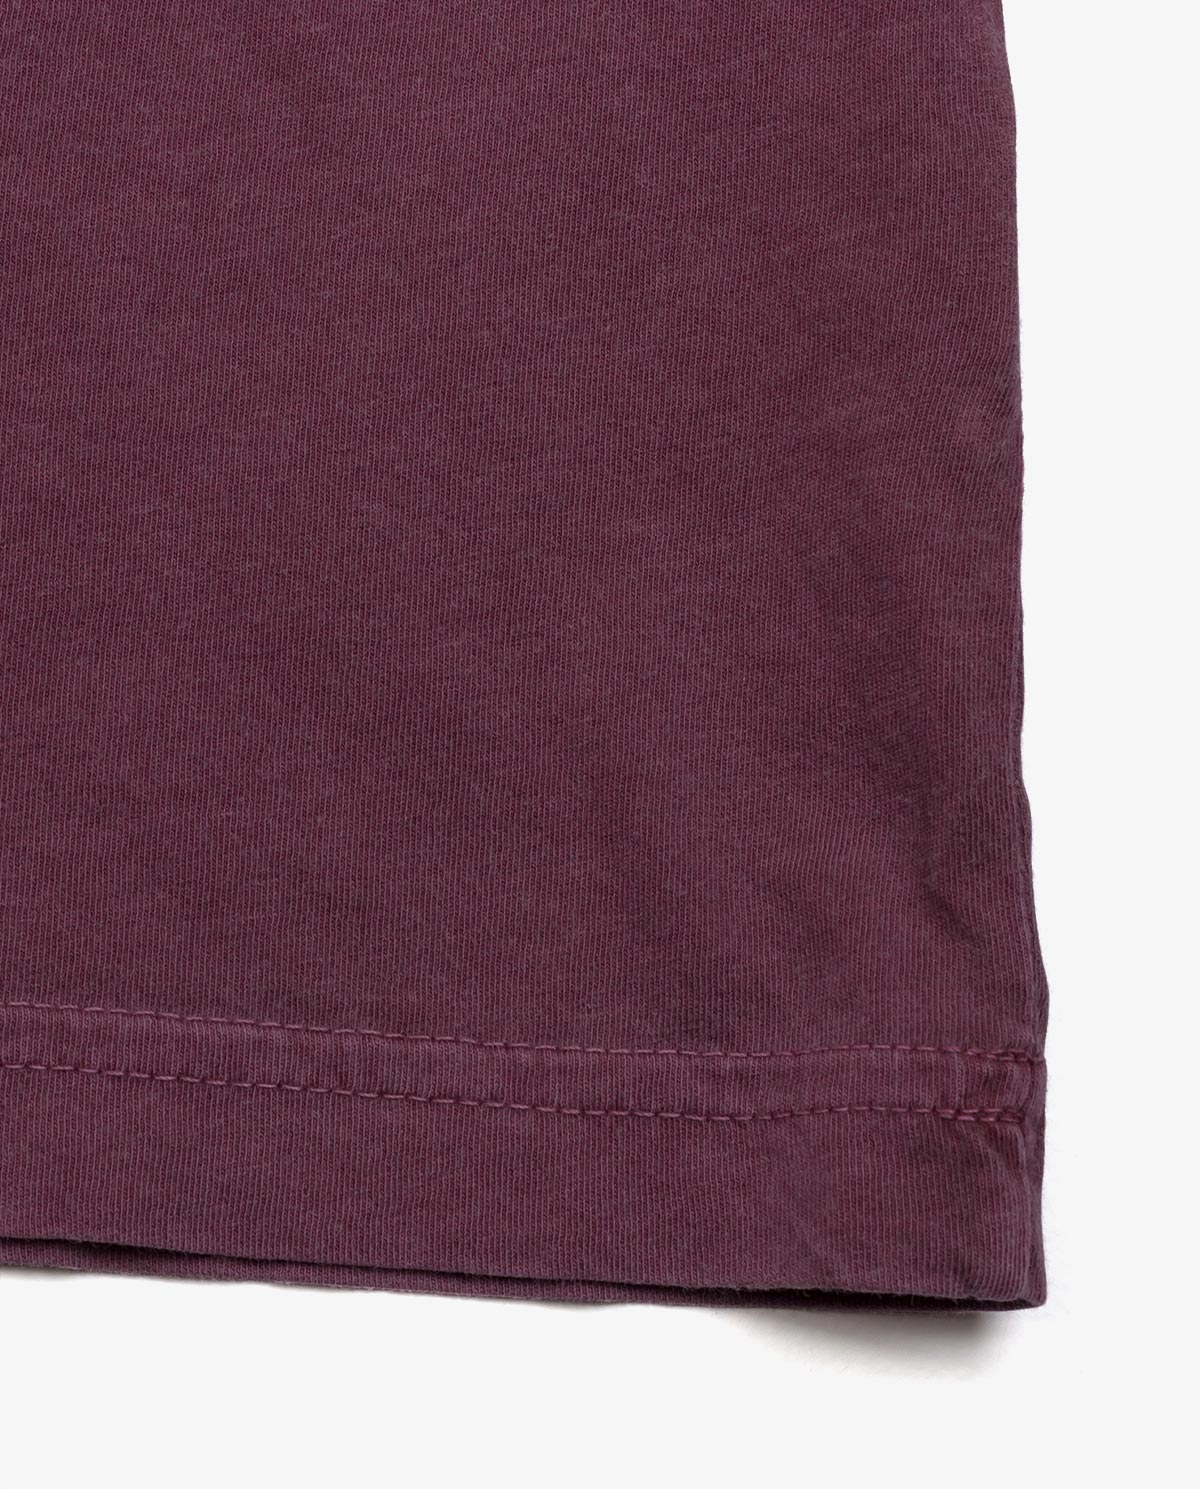 Ahnako Basic Tee Shirt - Pomegrante - Hem Close Up